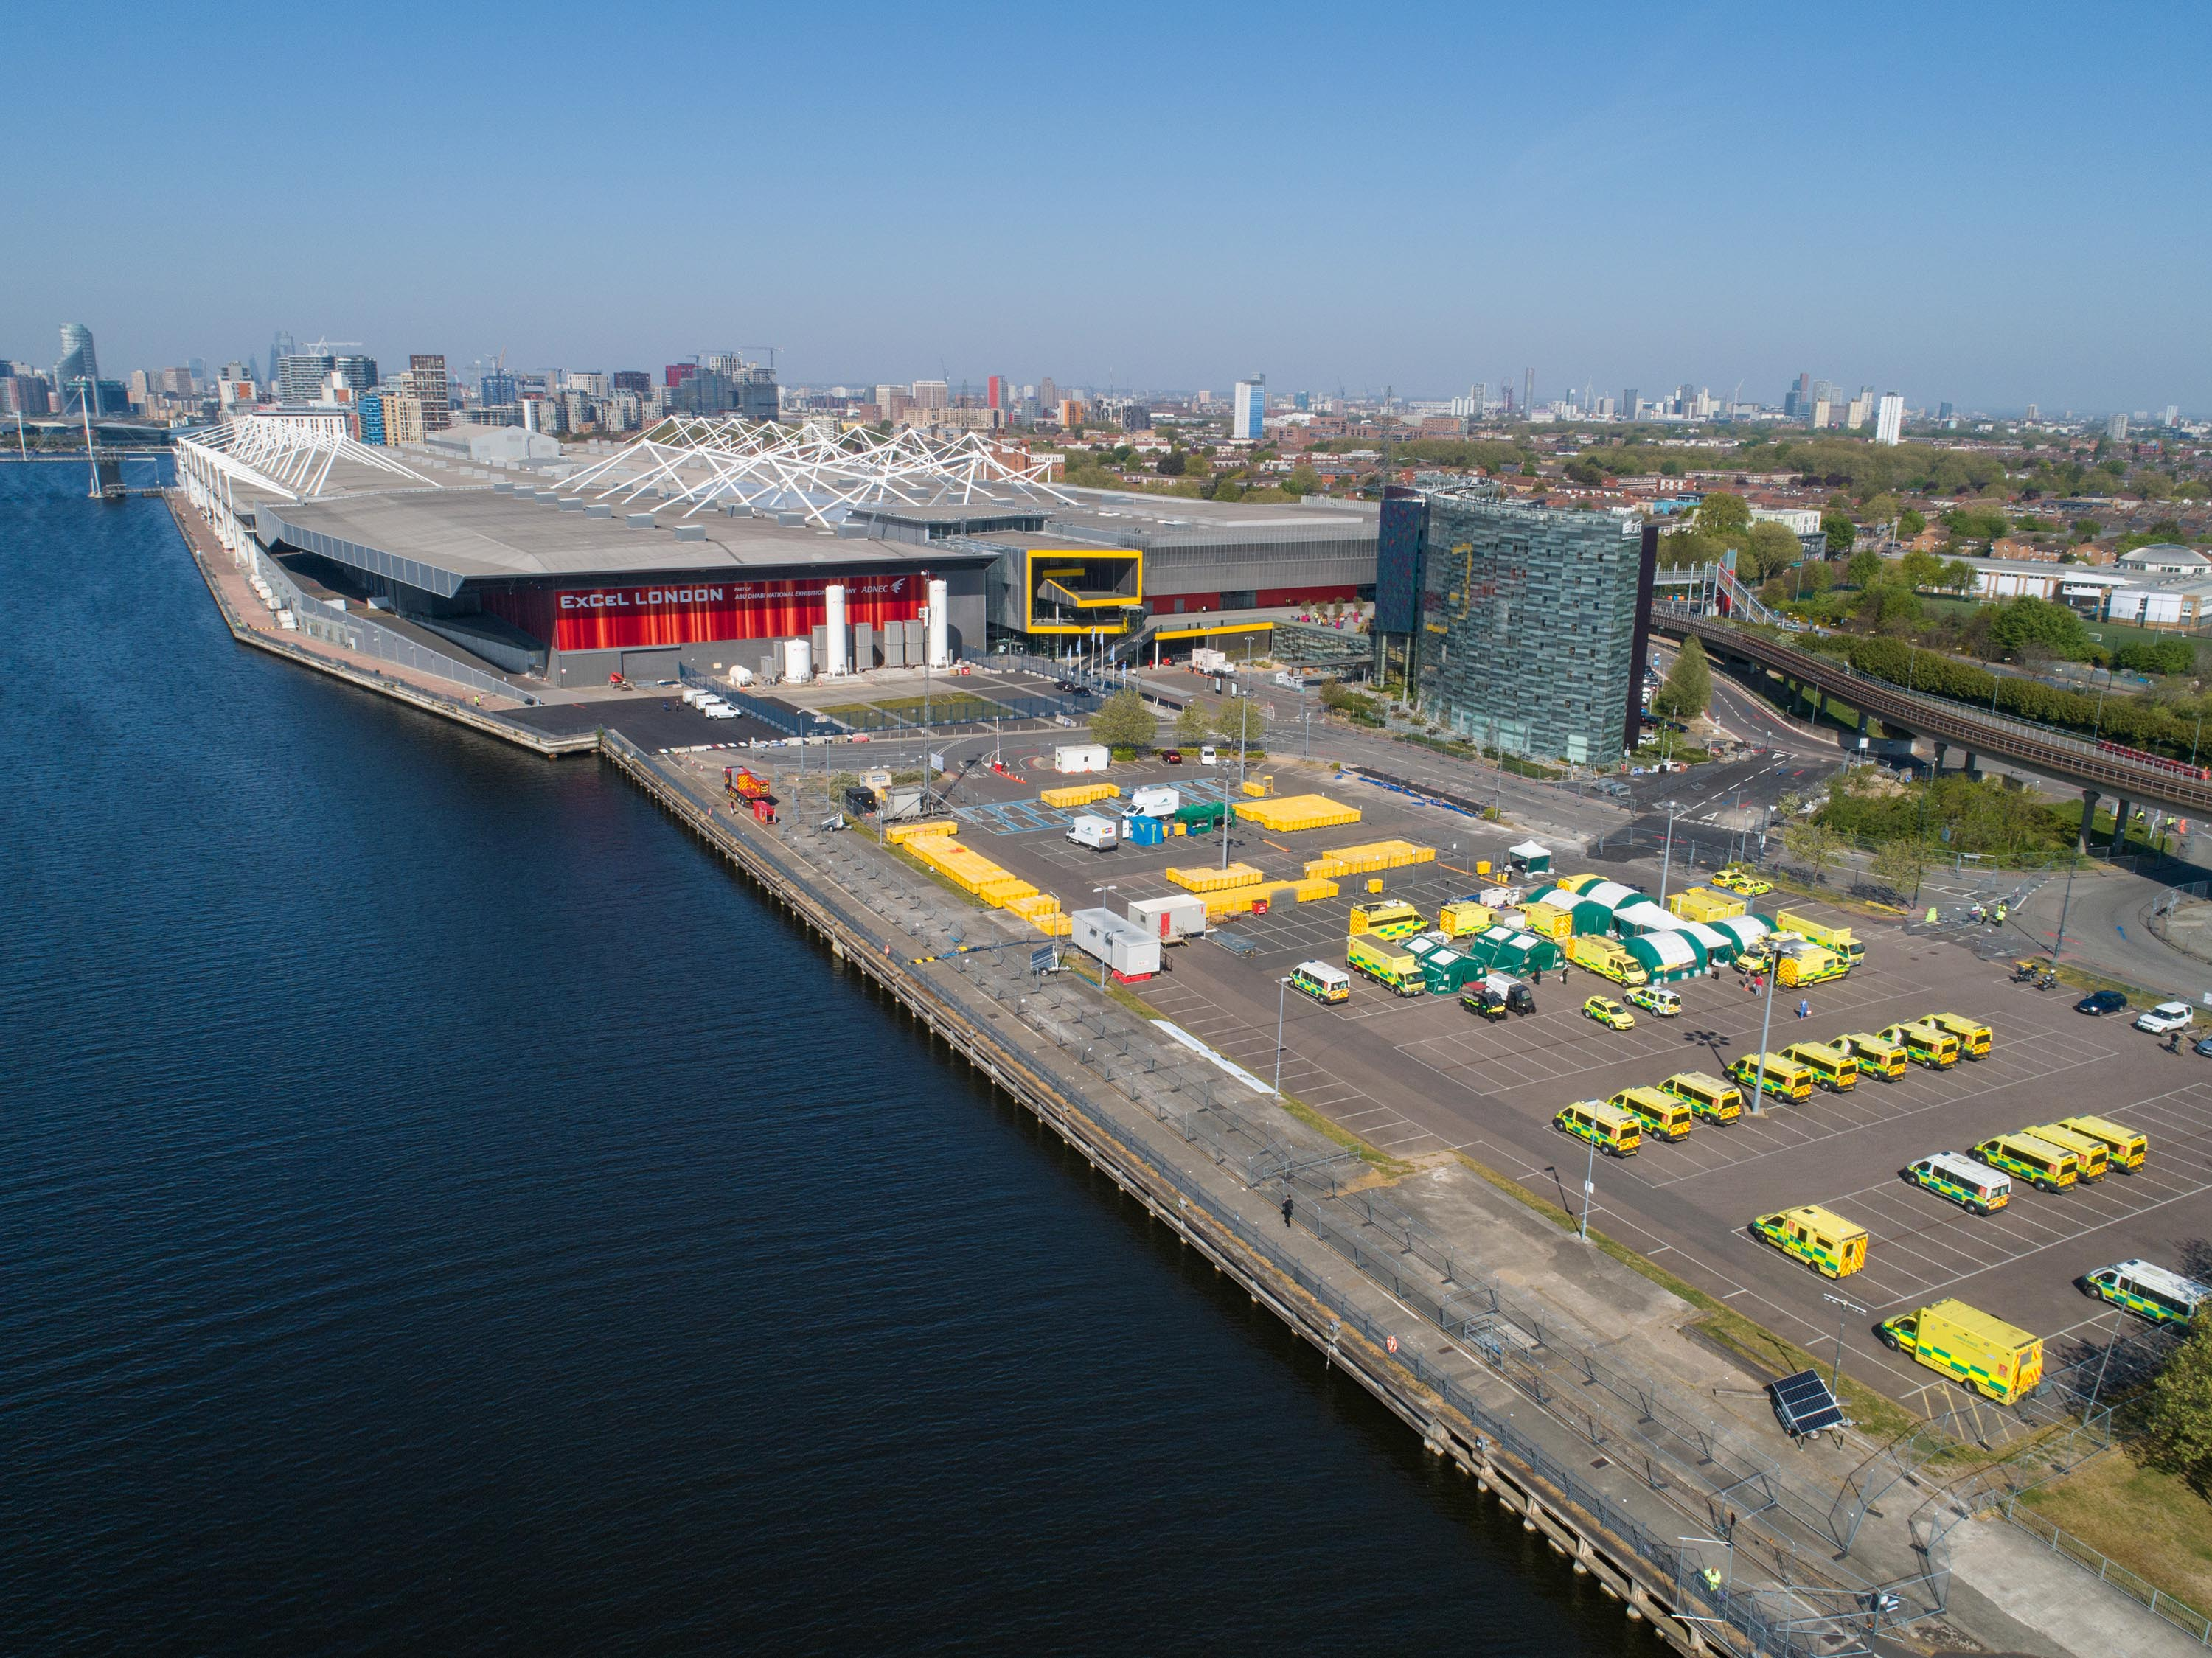 Emergency response vehicles sit parked outside London's ExCel conference center, which has been converted into an NHS Nightingale hospital to deal with the coronavirus pandemic, in this aerial view on Wednesday.